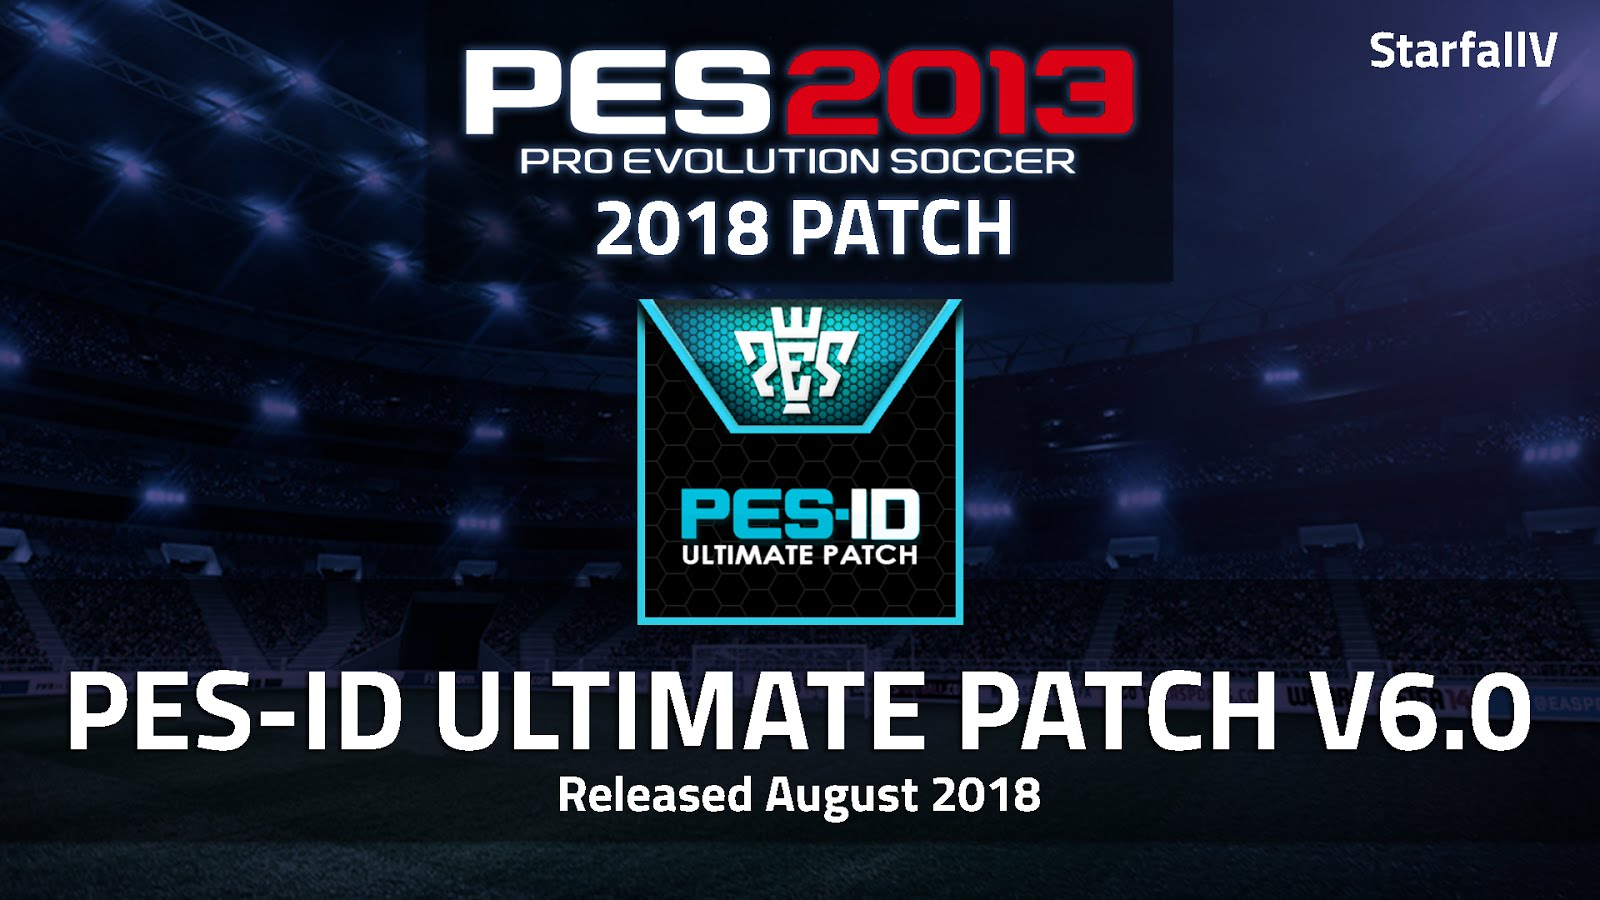 PES-ID Ultimate Patch 2013 v6.0